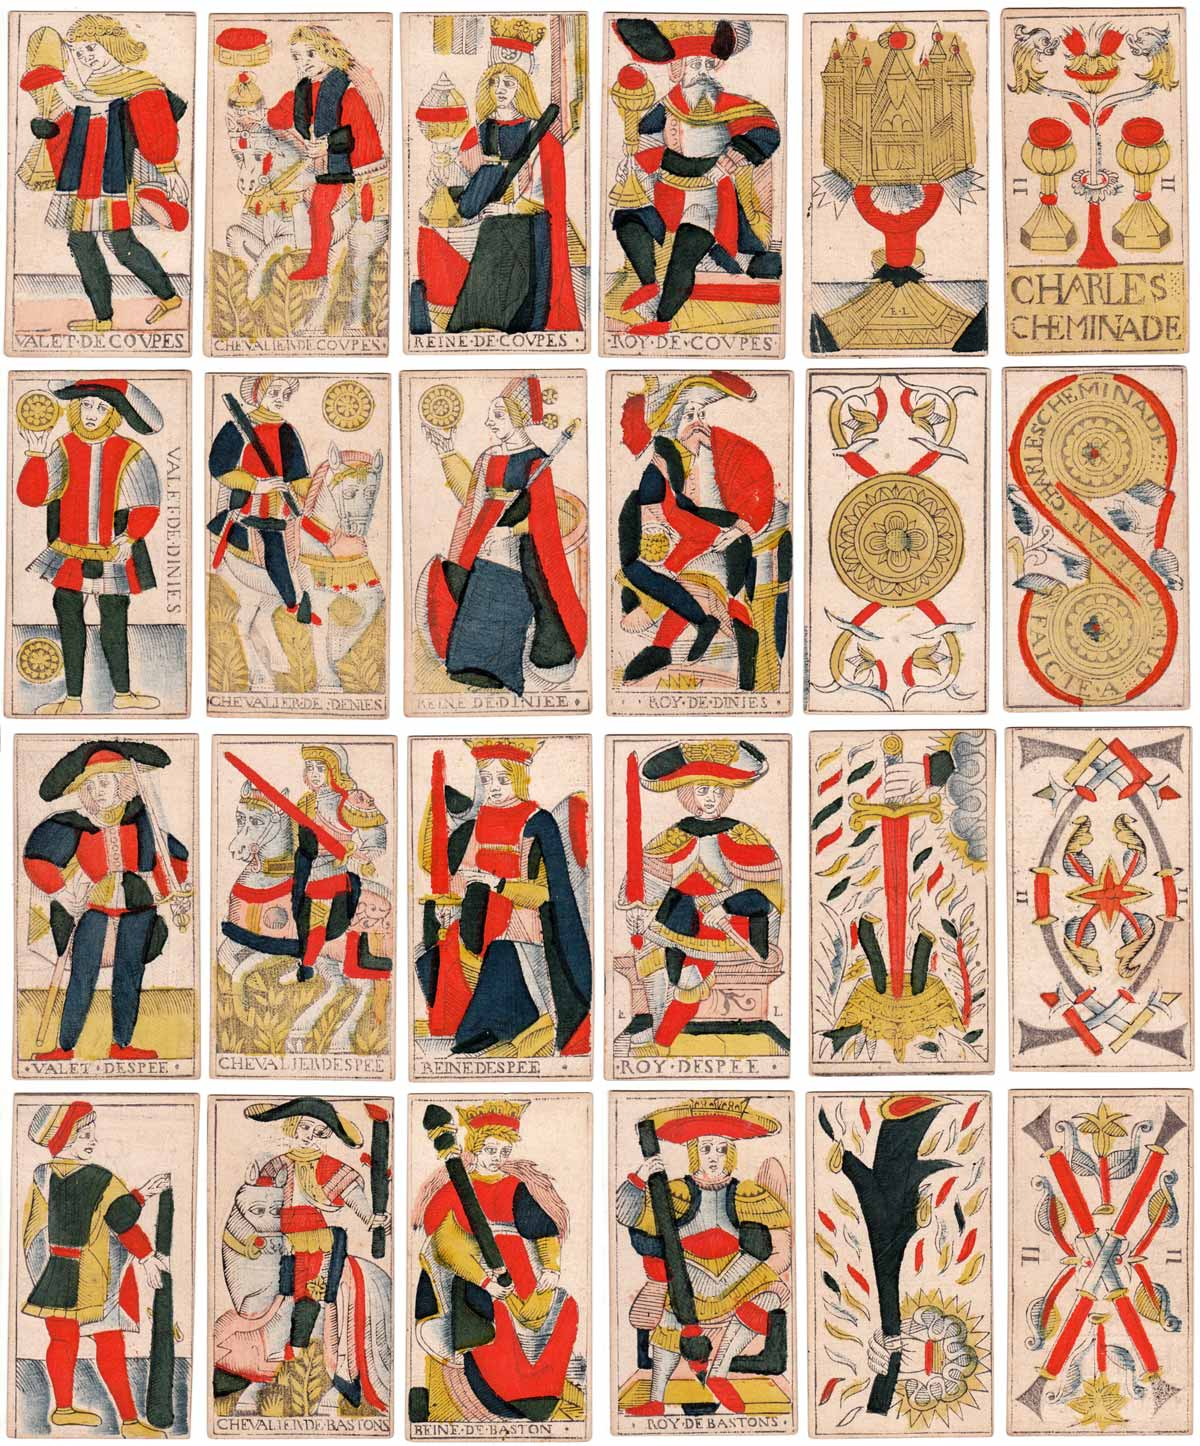 Marseille Tarot court cards by Charles Cheminade of Grenoble, France, early 18th century